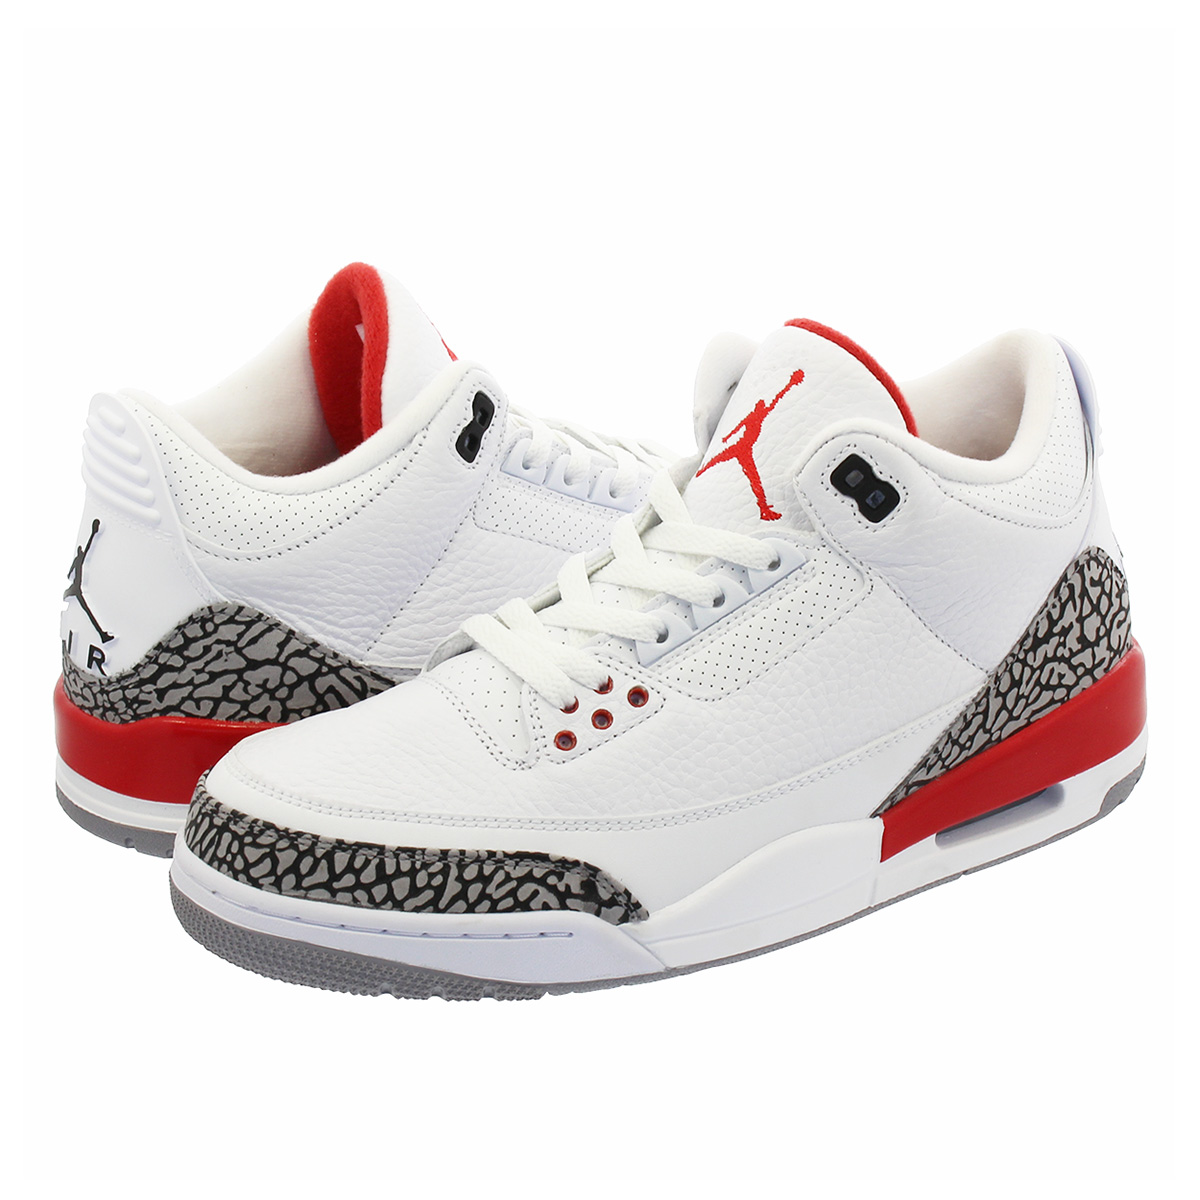 size 40 fef31 5cddf NIKE AIR JORDAN 3 RETRO Nike Air Jordan 3 nostalgic WHITE CEMENT GREY FIRE  RED 136,064-116